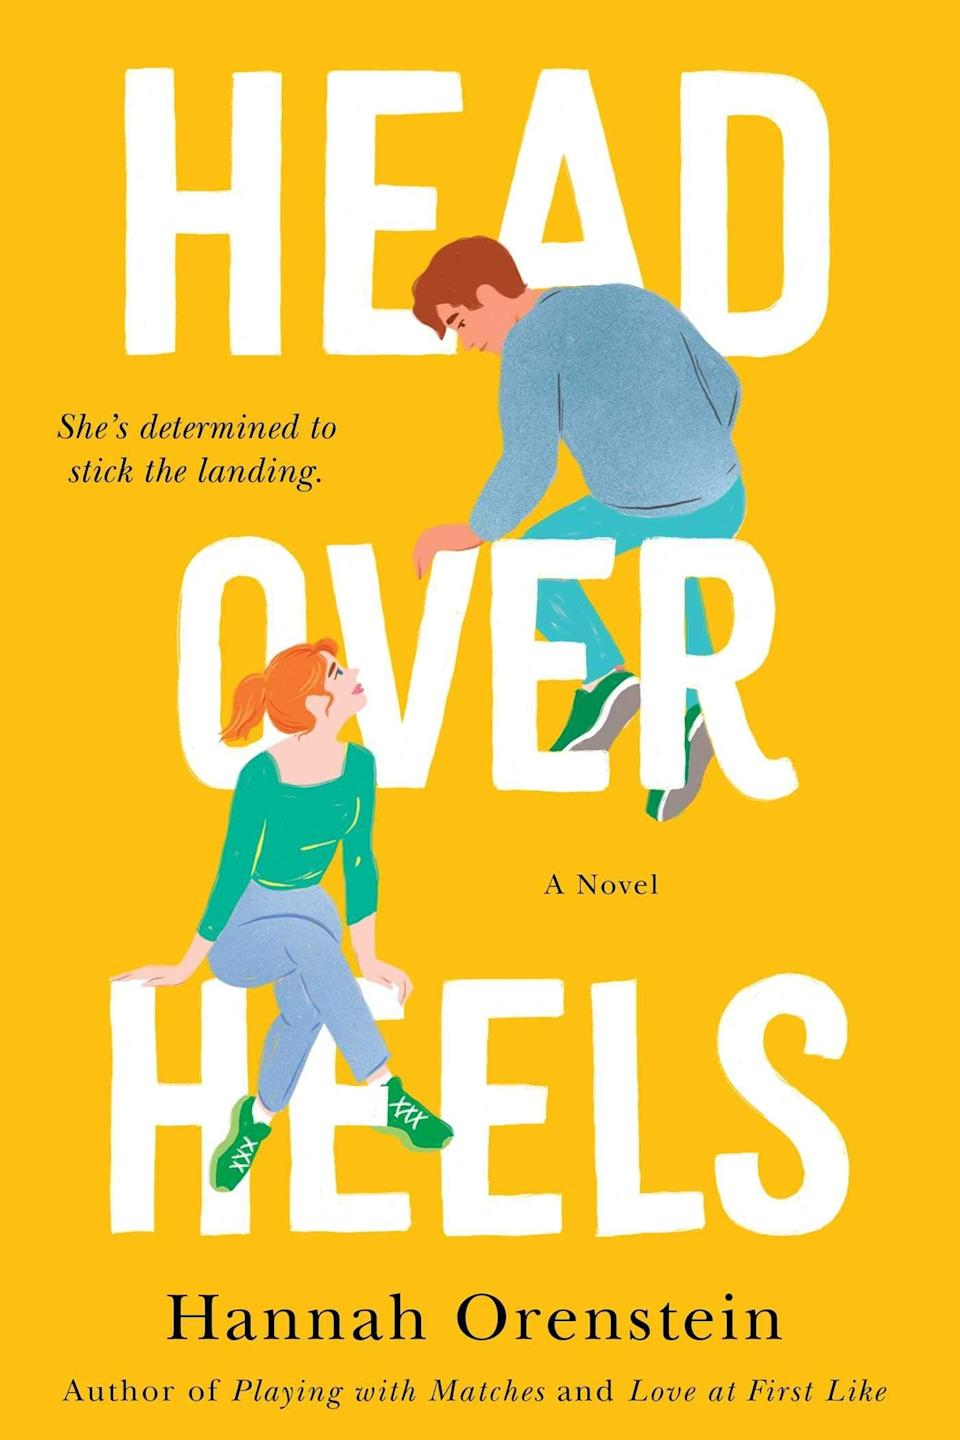 <p>Let them tumble into the world of competitive gymnastics with <span><strong>Head Over Heels</strong> by Hannah Orenstein</span> ($11). Avery Abrams, a previous Olympic gymnastics hopeful returns home and takes up an opportunity to coach a young gymnast, Hallie, alongside fellow former pro, and former crush, Ryan Nicholson. As Avery trains Hallie, and starts falling for Ryan, she must reckon with her past - and future - in the world of competitive gymnastics.</p> <p>I thought this was a cute read as someone who doesn't know a whole lot about gymnastics, so I can only imagine how much more enjoyable it would be for someone who does. The romance is sweet, and I love the empowering undertone with satisfying character development for Avery.</p>